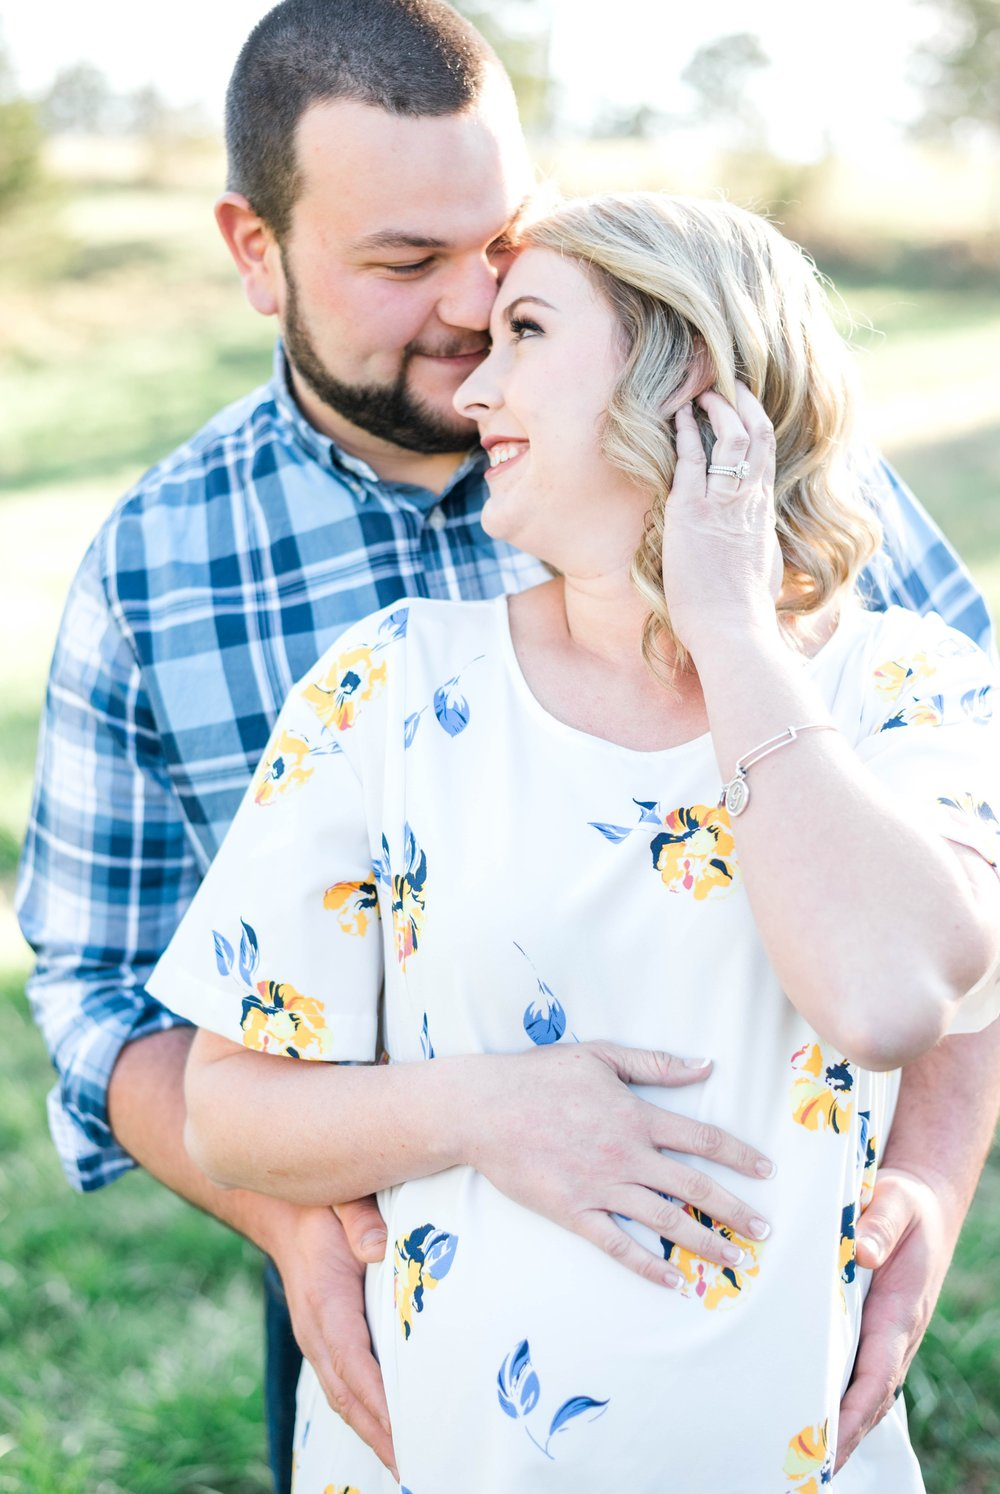 SorellaFarms_Jessica+Dylan_MaternitySession_Virginiaweddingphotographer 6.jpg